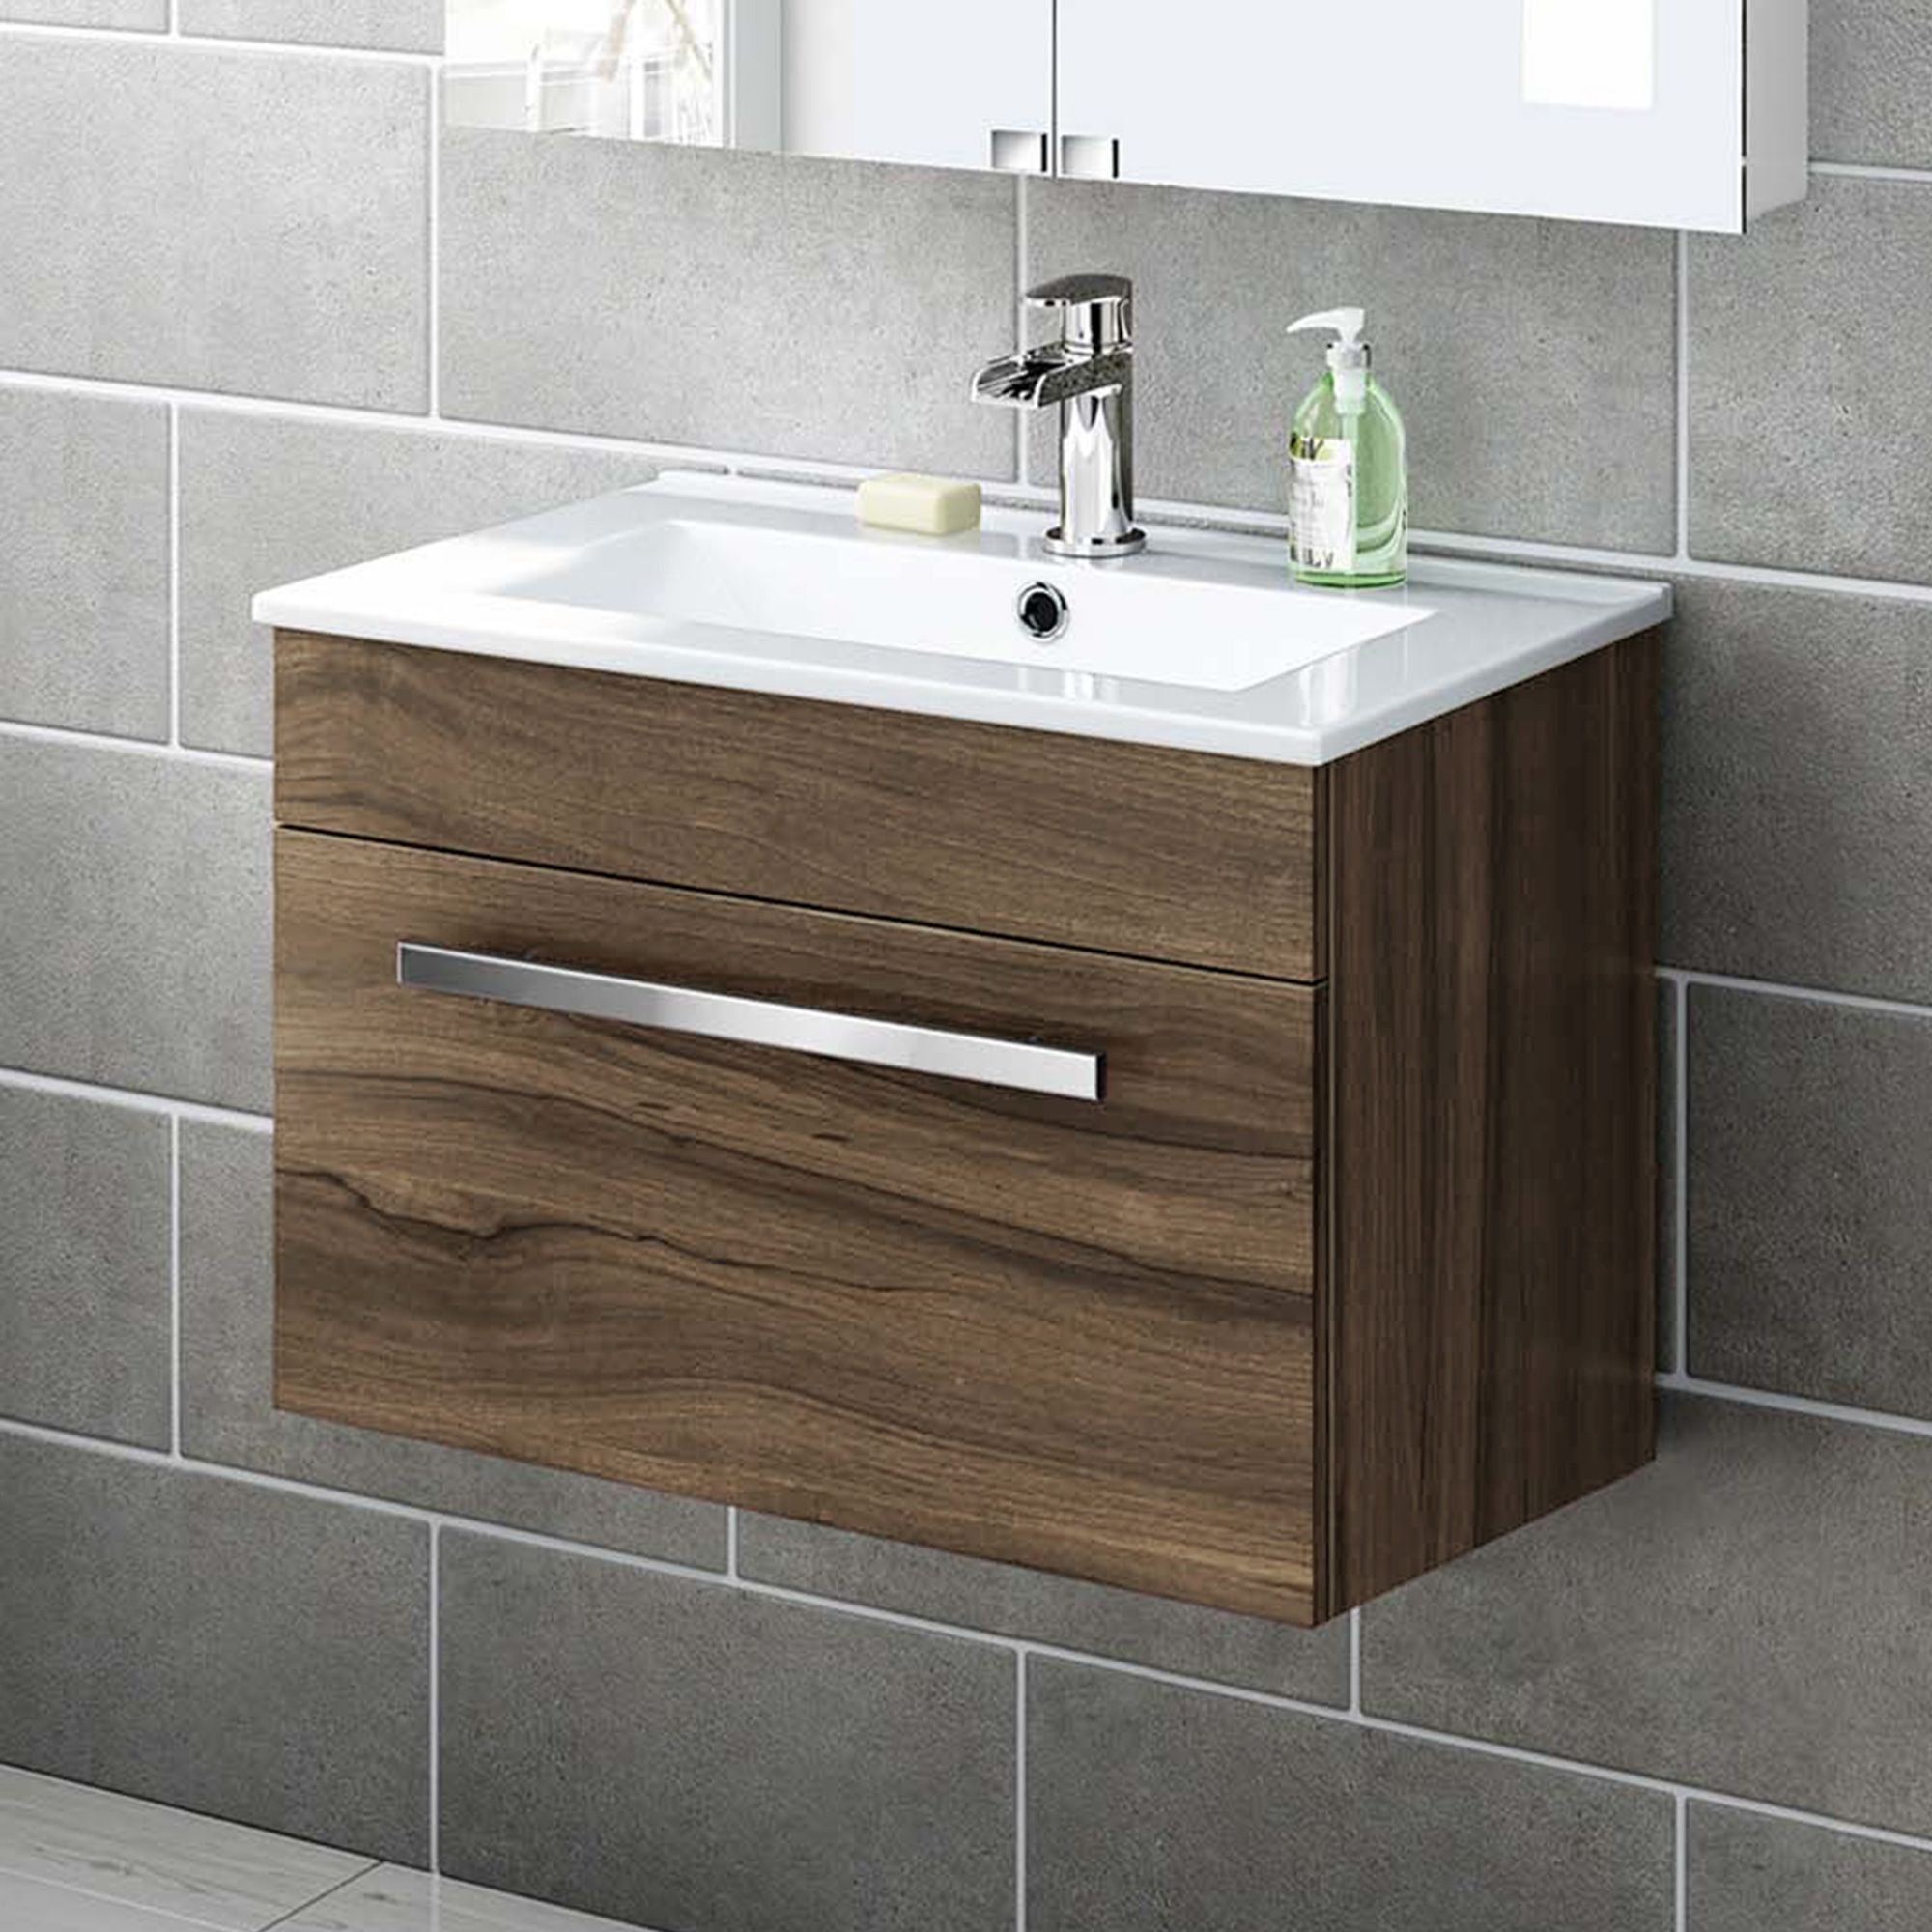 600mm Walnut Wall Hung Basin Cabinet Avon Bathempire Bathroom Basin Cabinet Wash Basin Cabinet Basin Cabinet